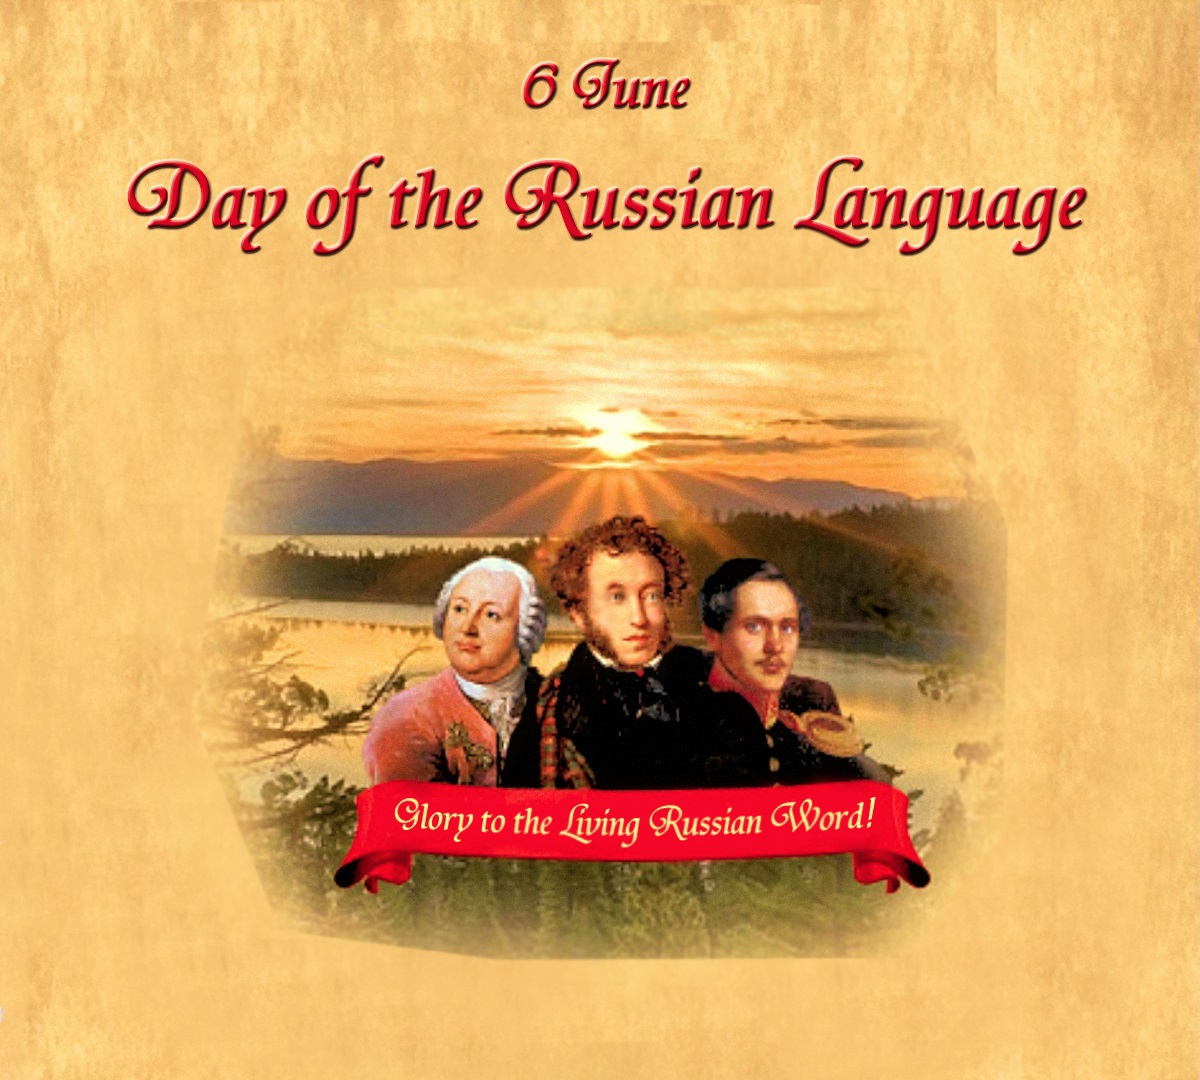 00 Day of the Russian Language 060616